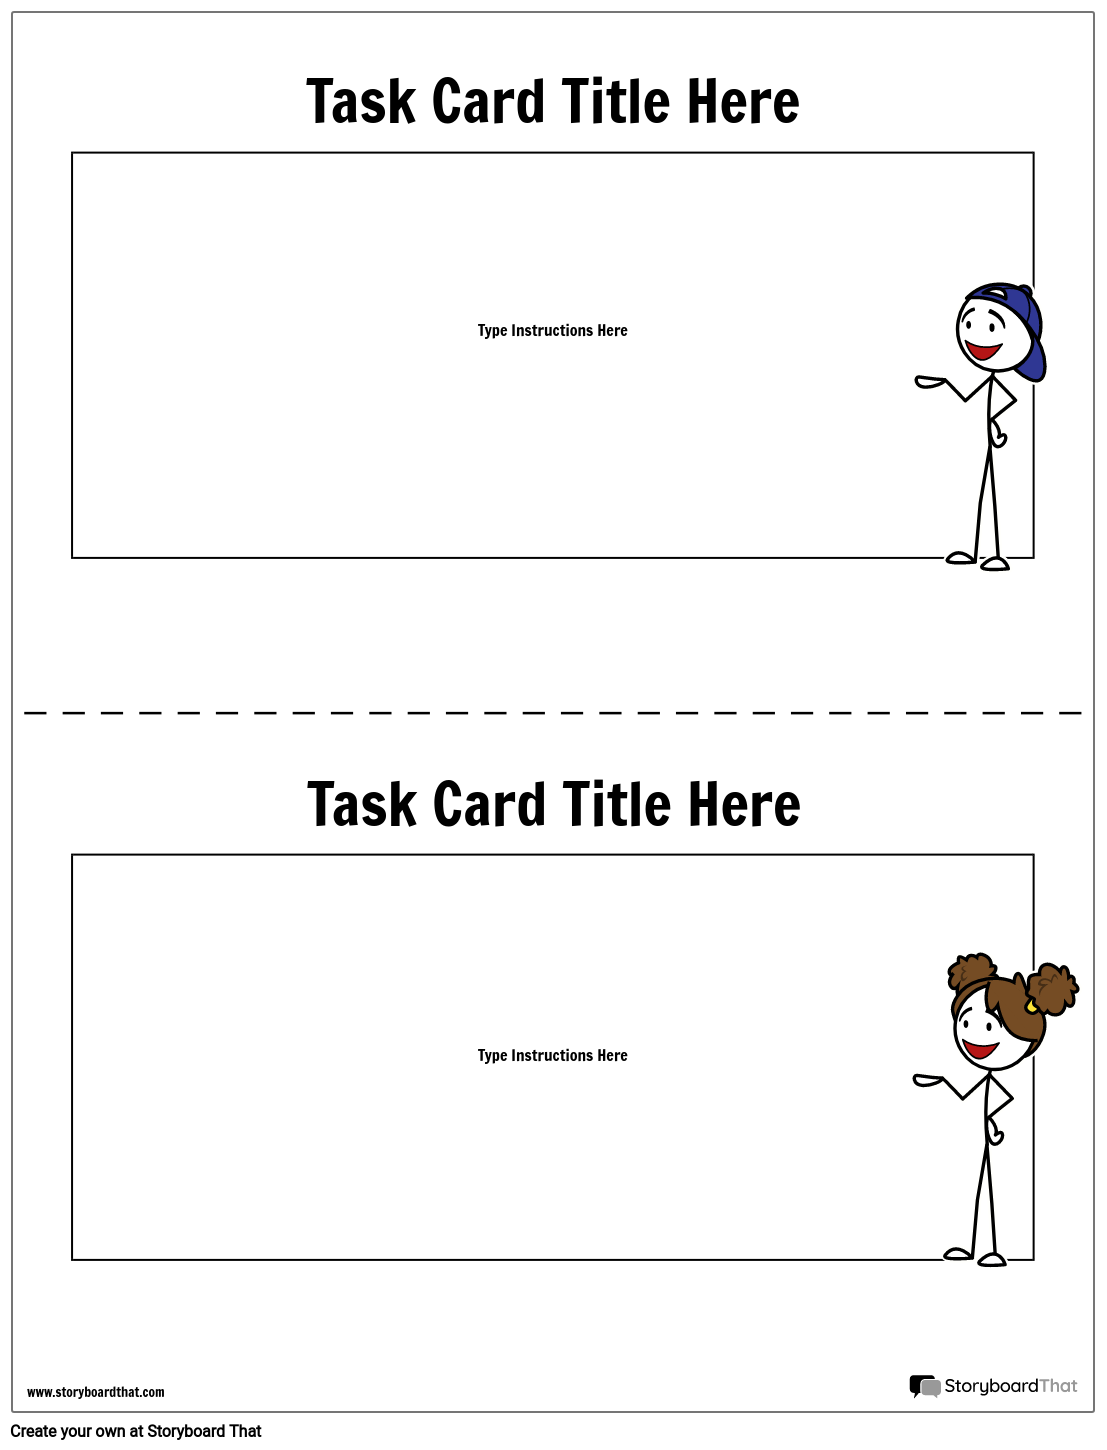 Task Card Template Task Card Maker Storyboard That